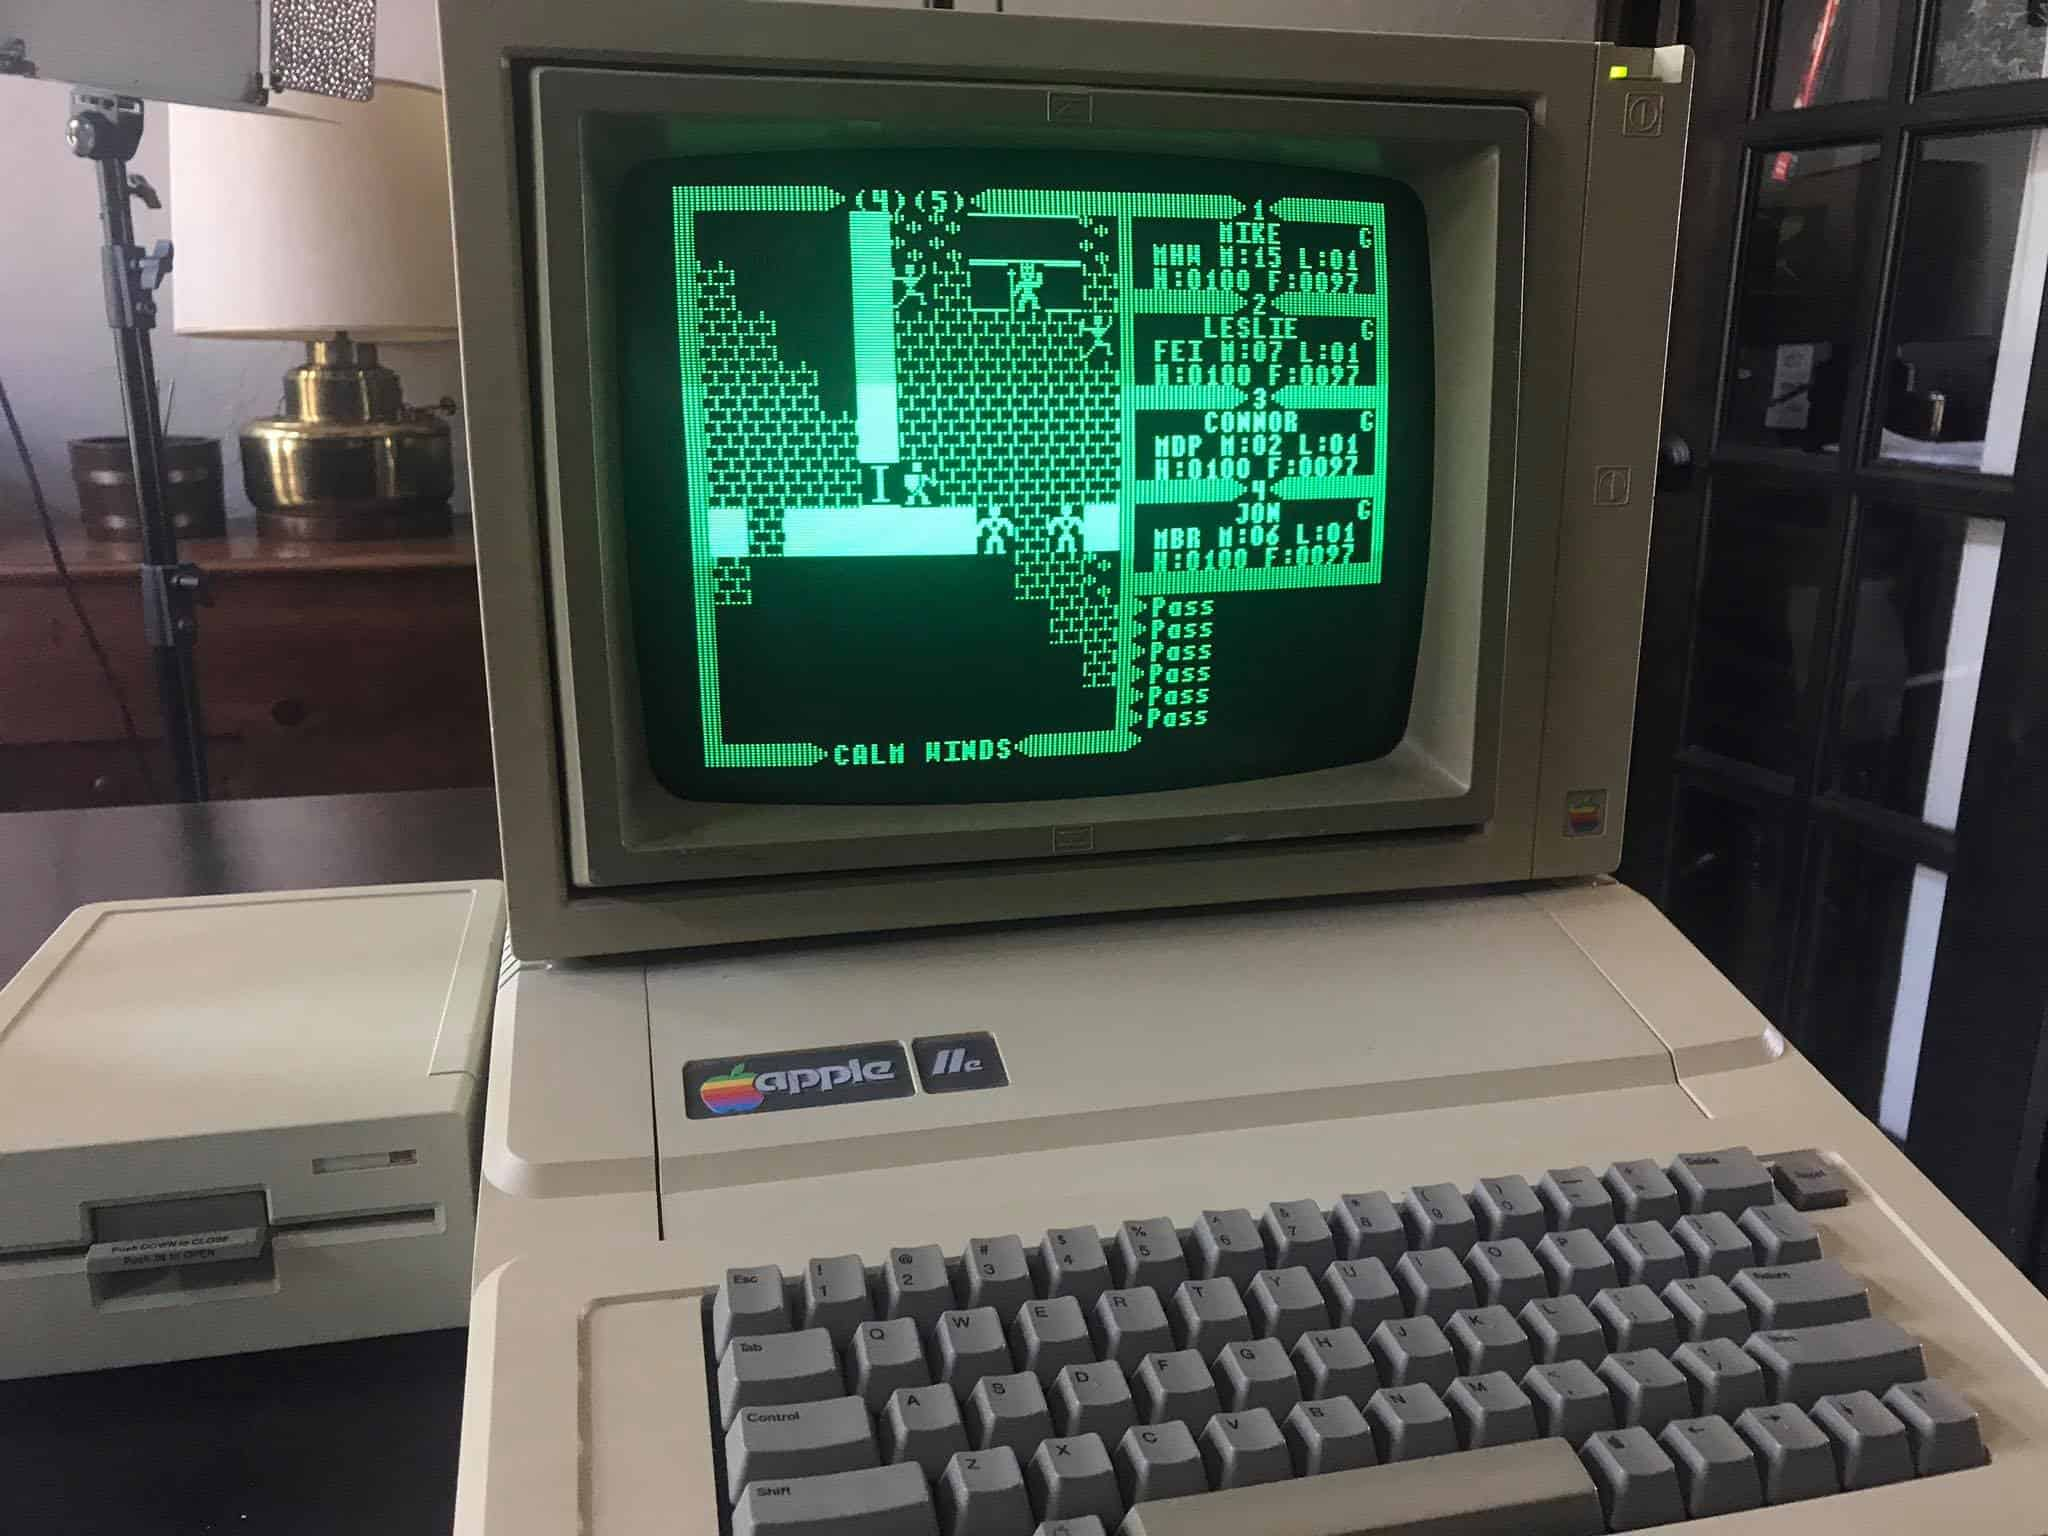 How to Transfer Files to your Apple II, II+, or IIe - The ...